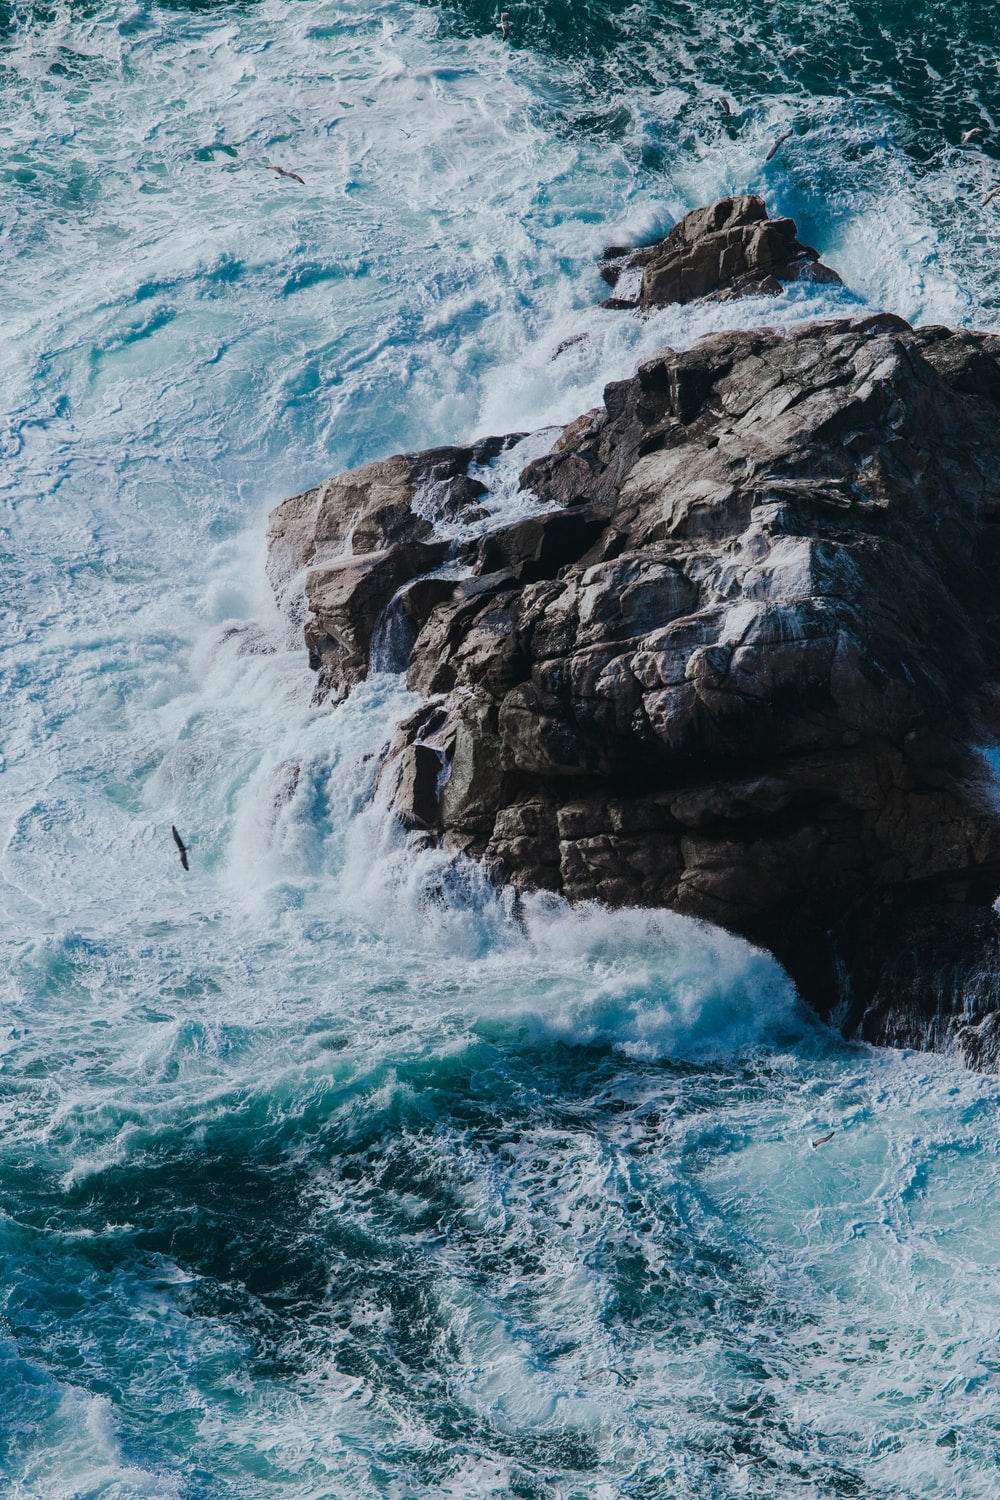 aerial photograph of sea wave splashing on rock